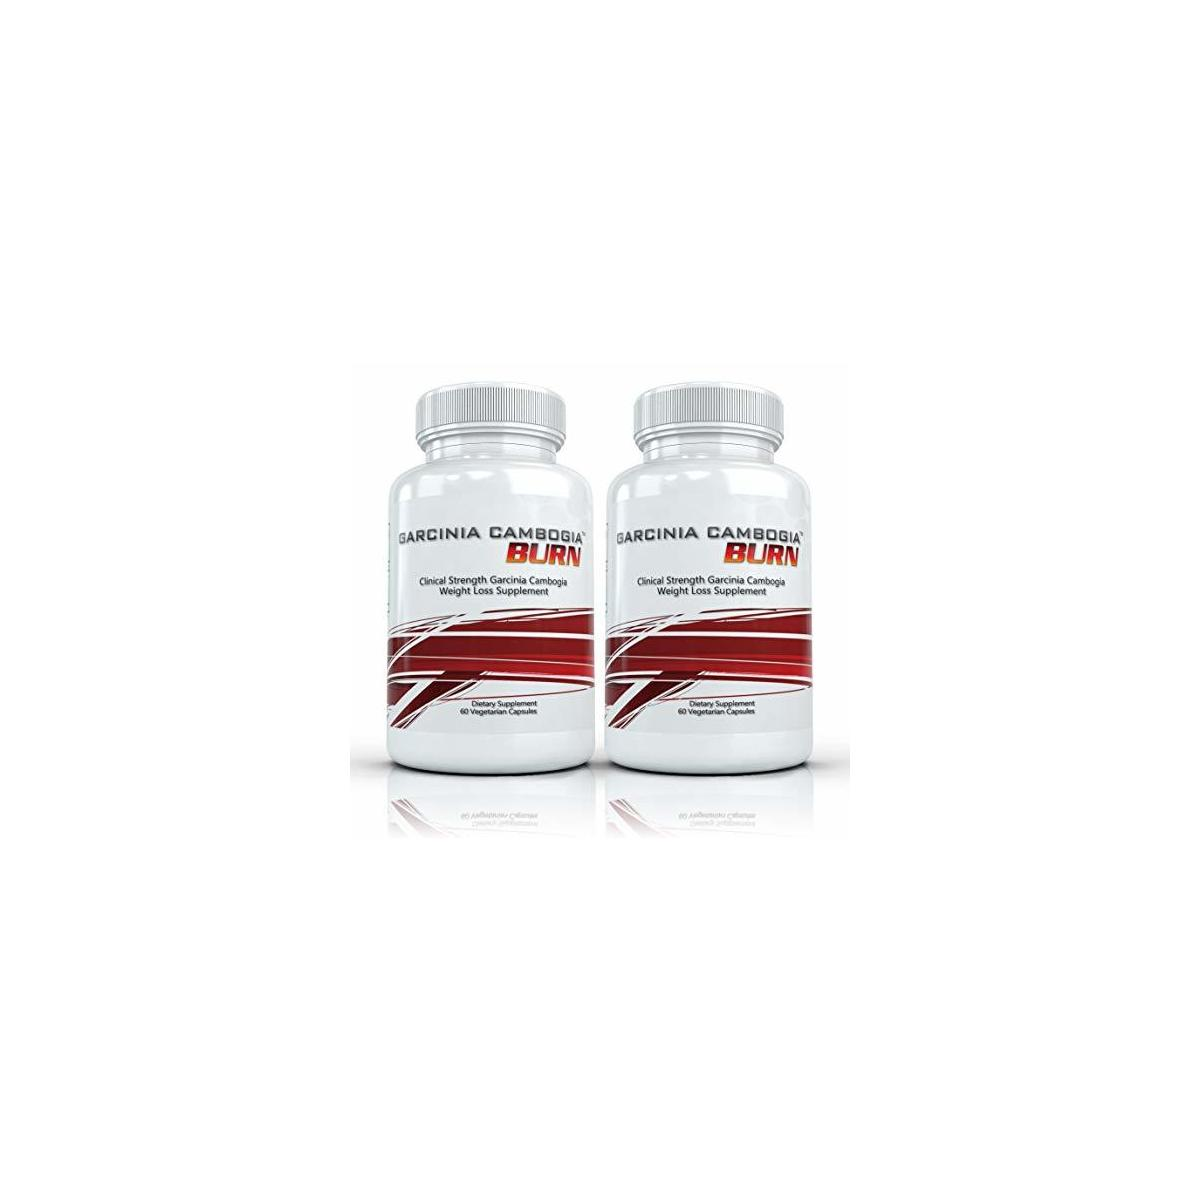 Garcinia Cambogia Burn (2 Bottles) - Weight Loss Supplement